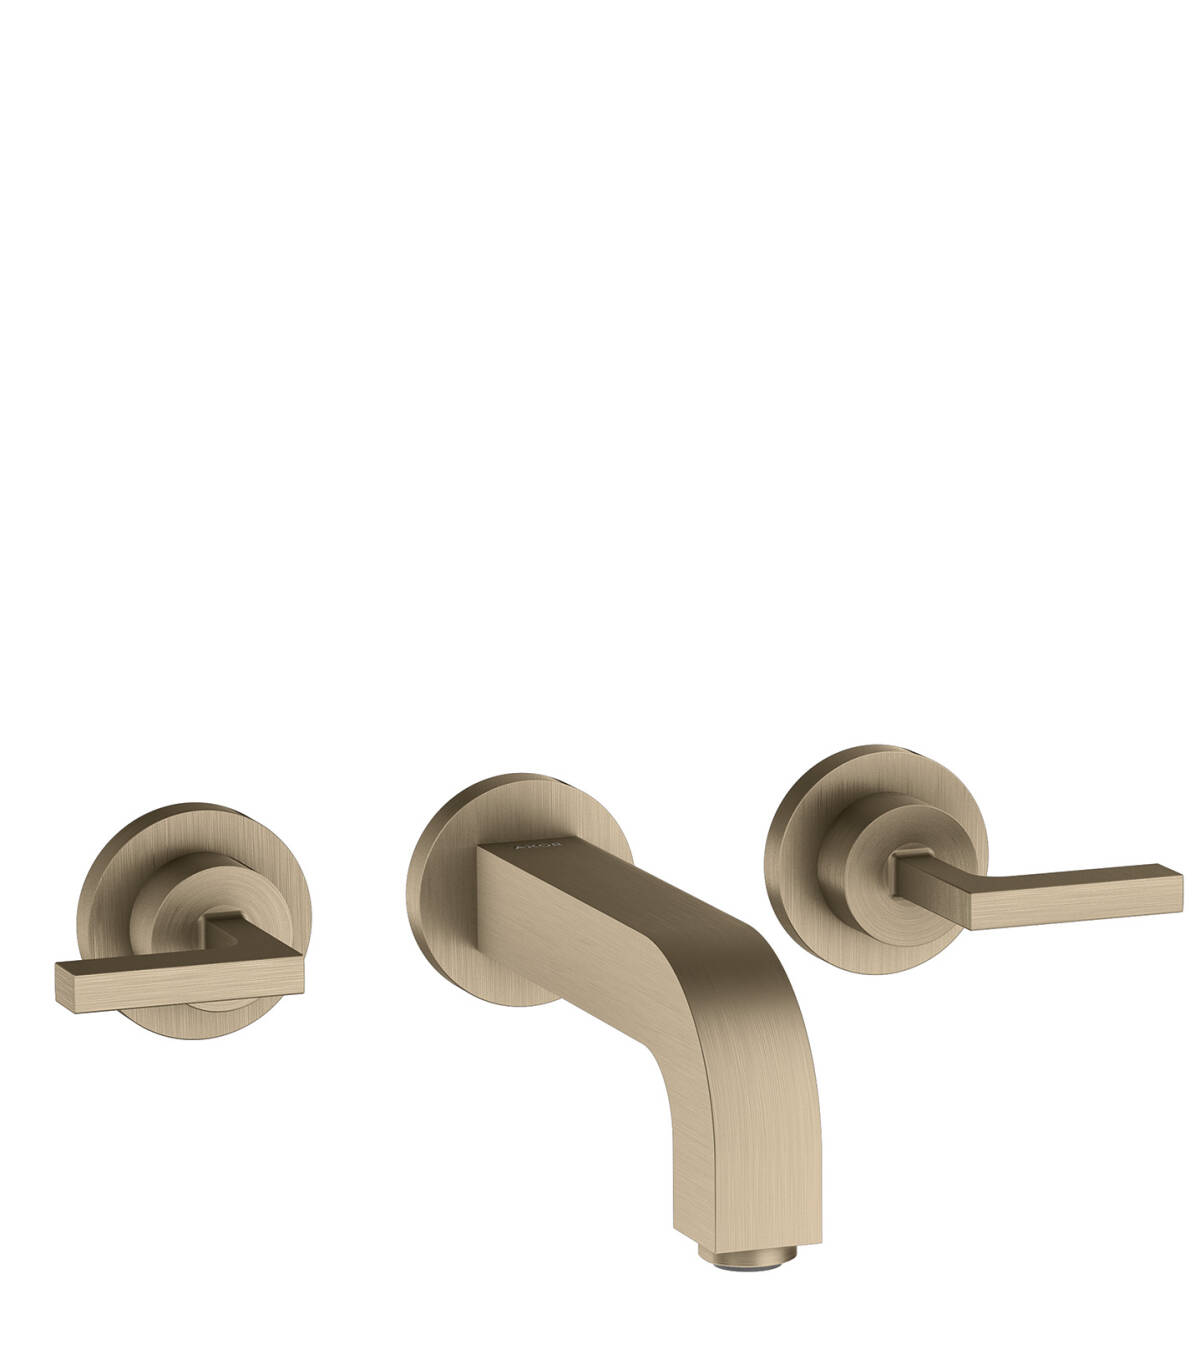 3-hole basin mixer for concealed installation wall-mounted with spout 162 mm, lever handles and escutcheons, Brushed Nickel, 39315820